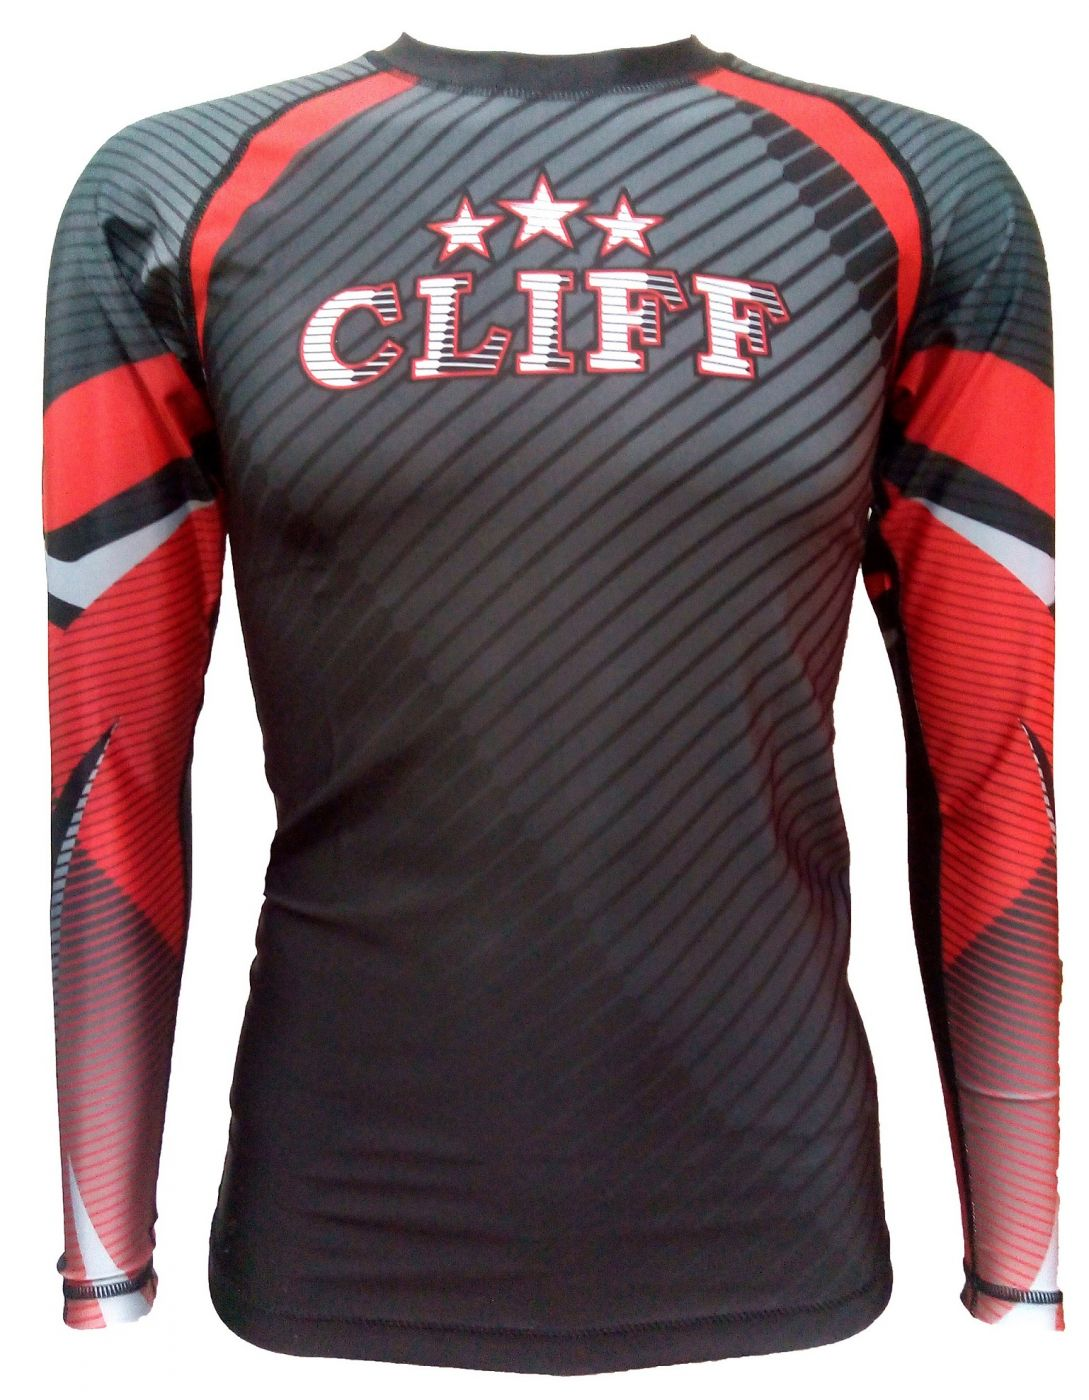 РАШГАРД ММА CLIFF R3.0 RED FIGHTER, размер XS